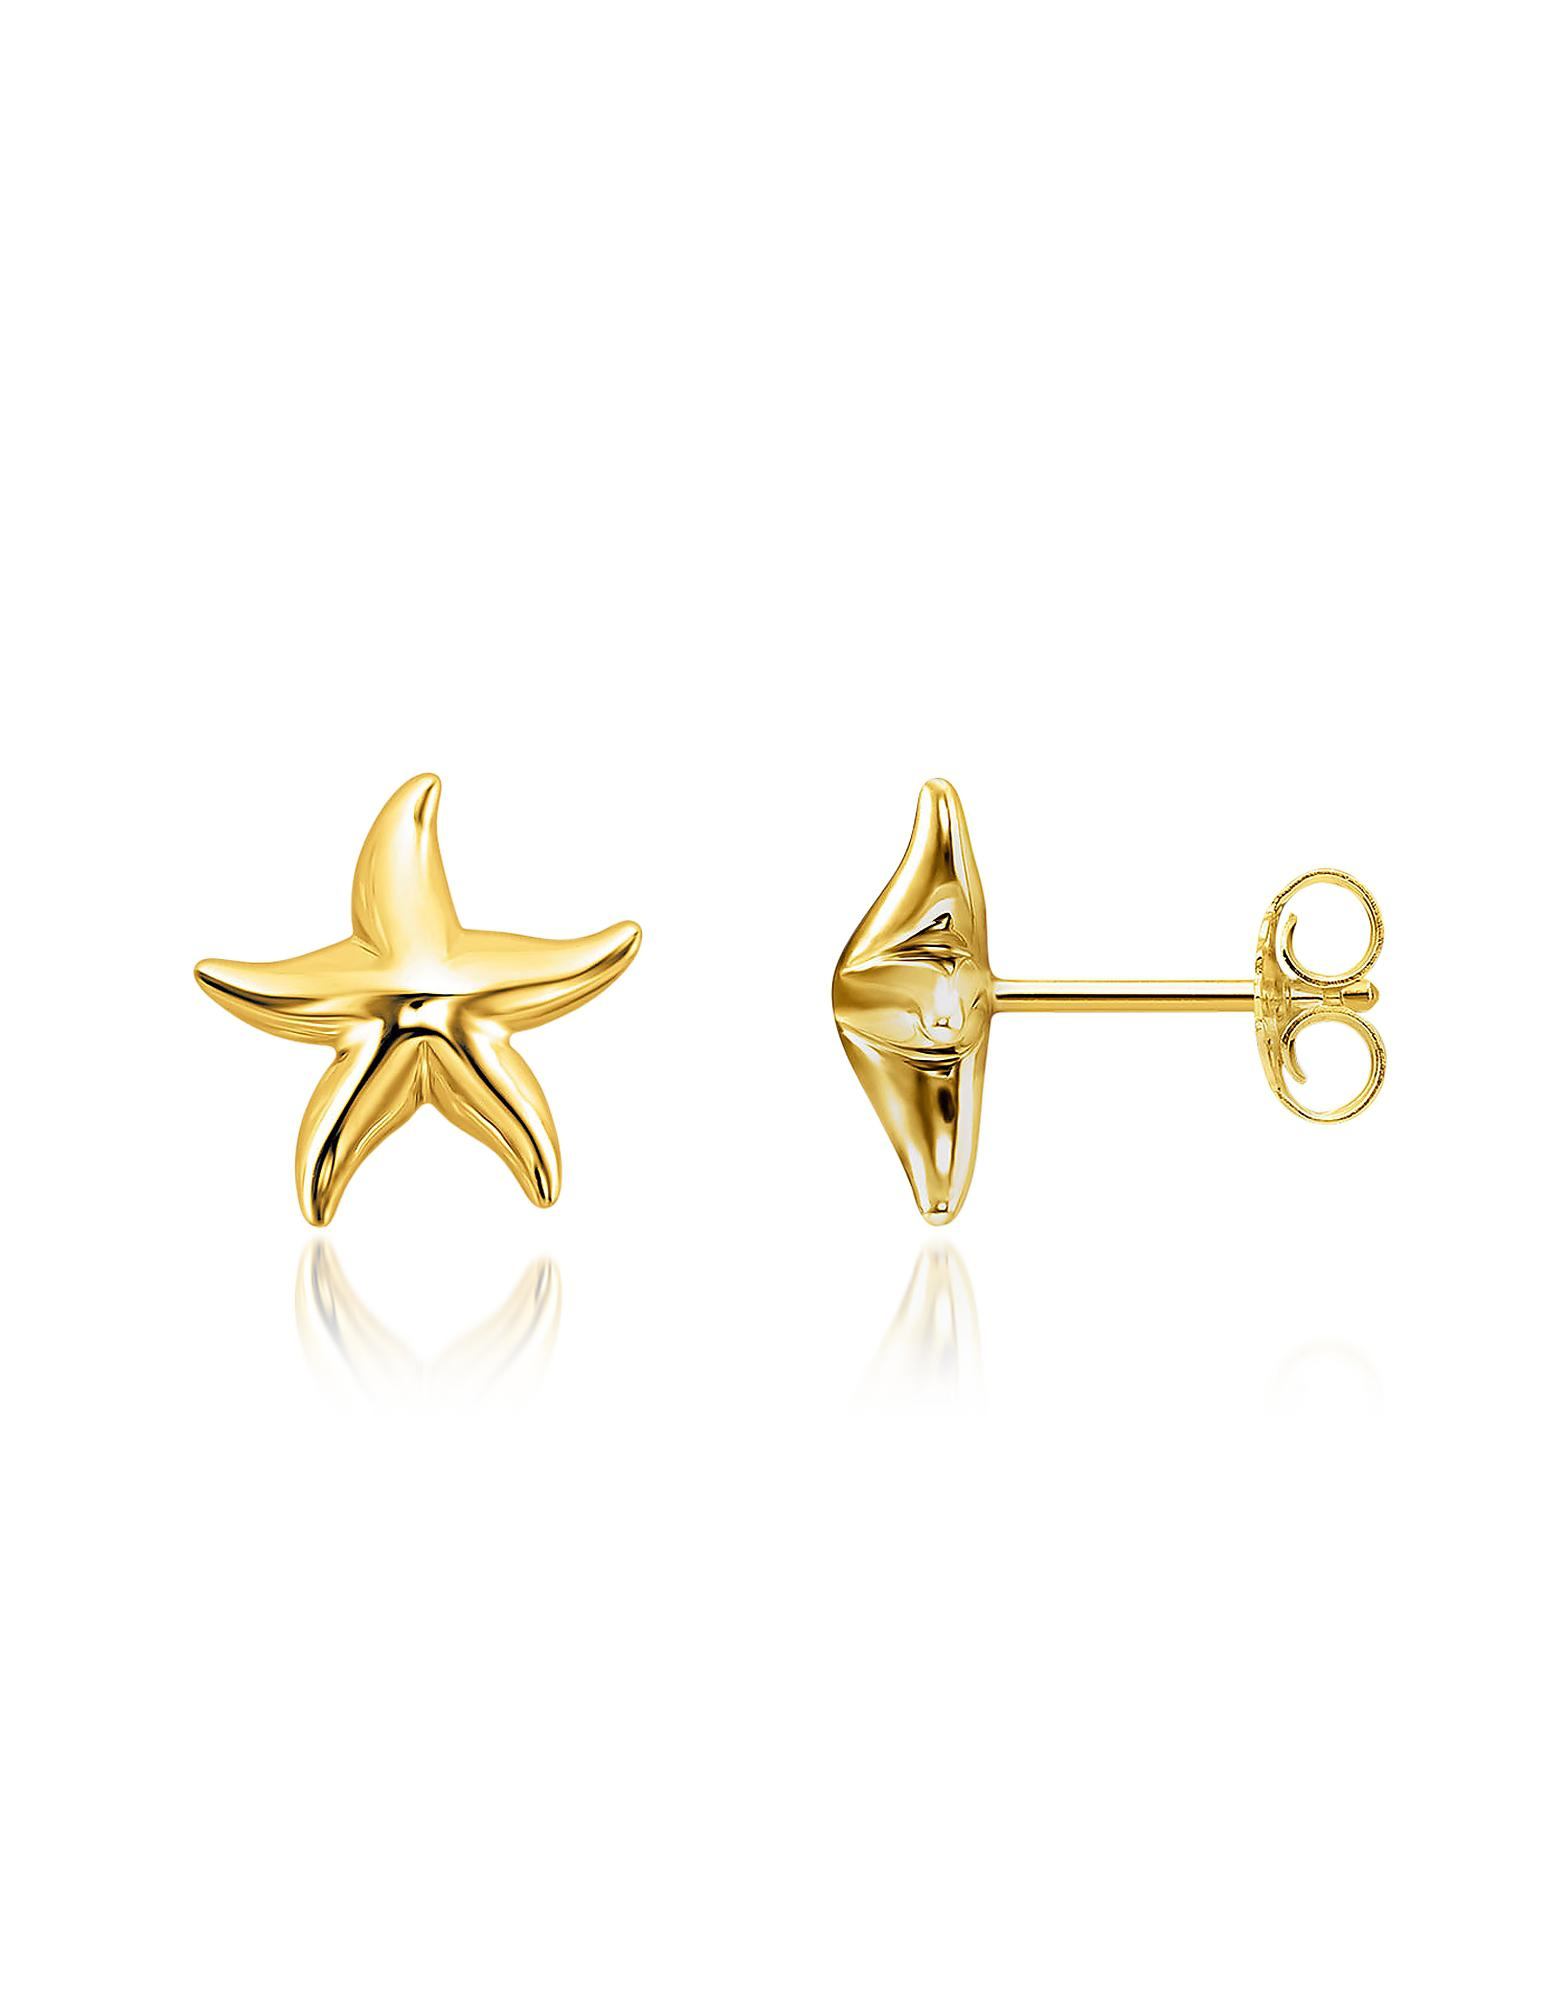 Thomas Sabo Women S Metallic Gold Plated Sterling Silver Starfish Earrings